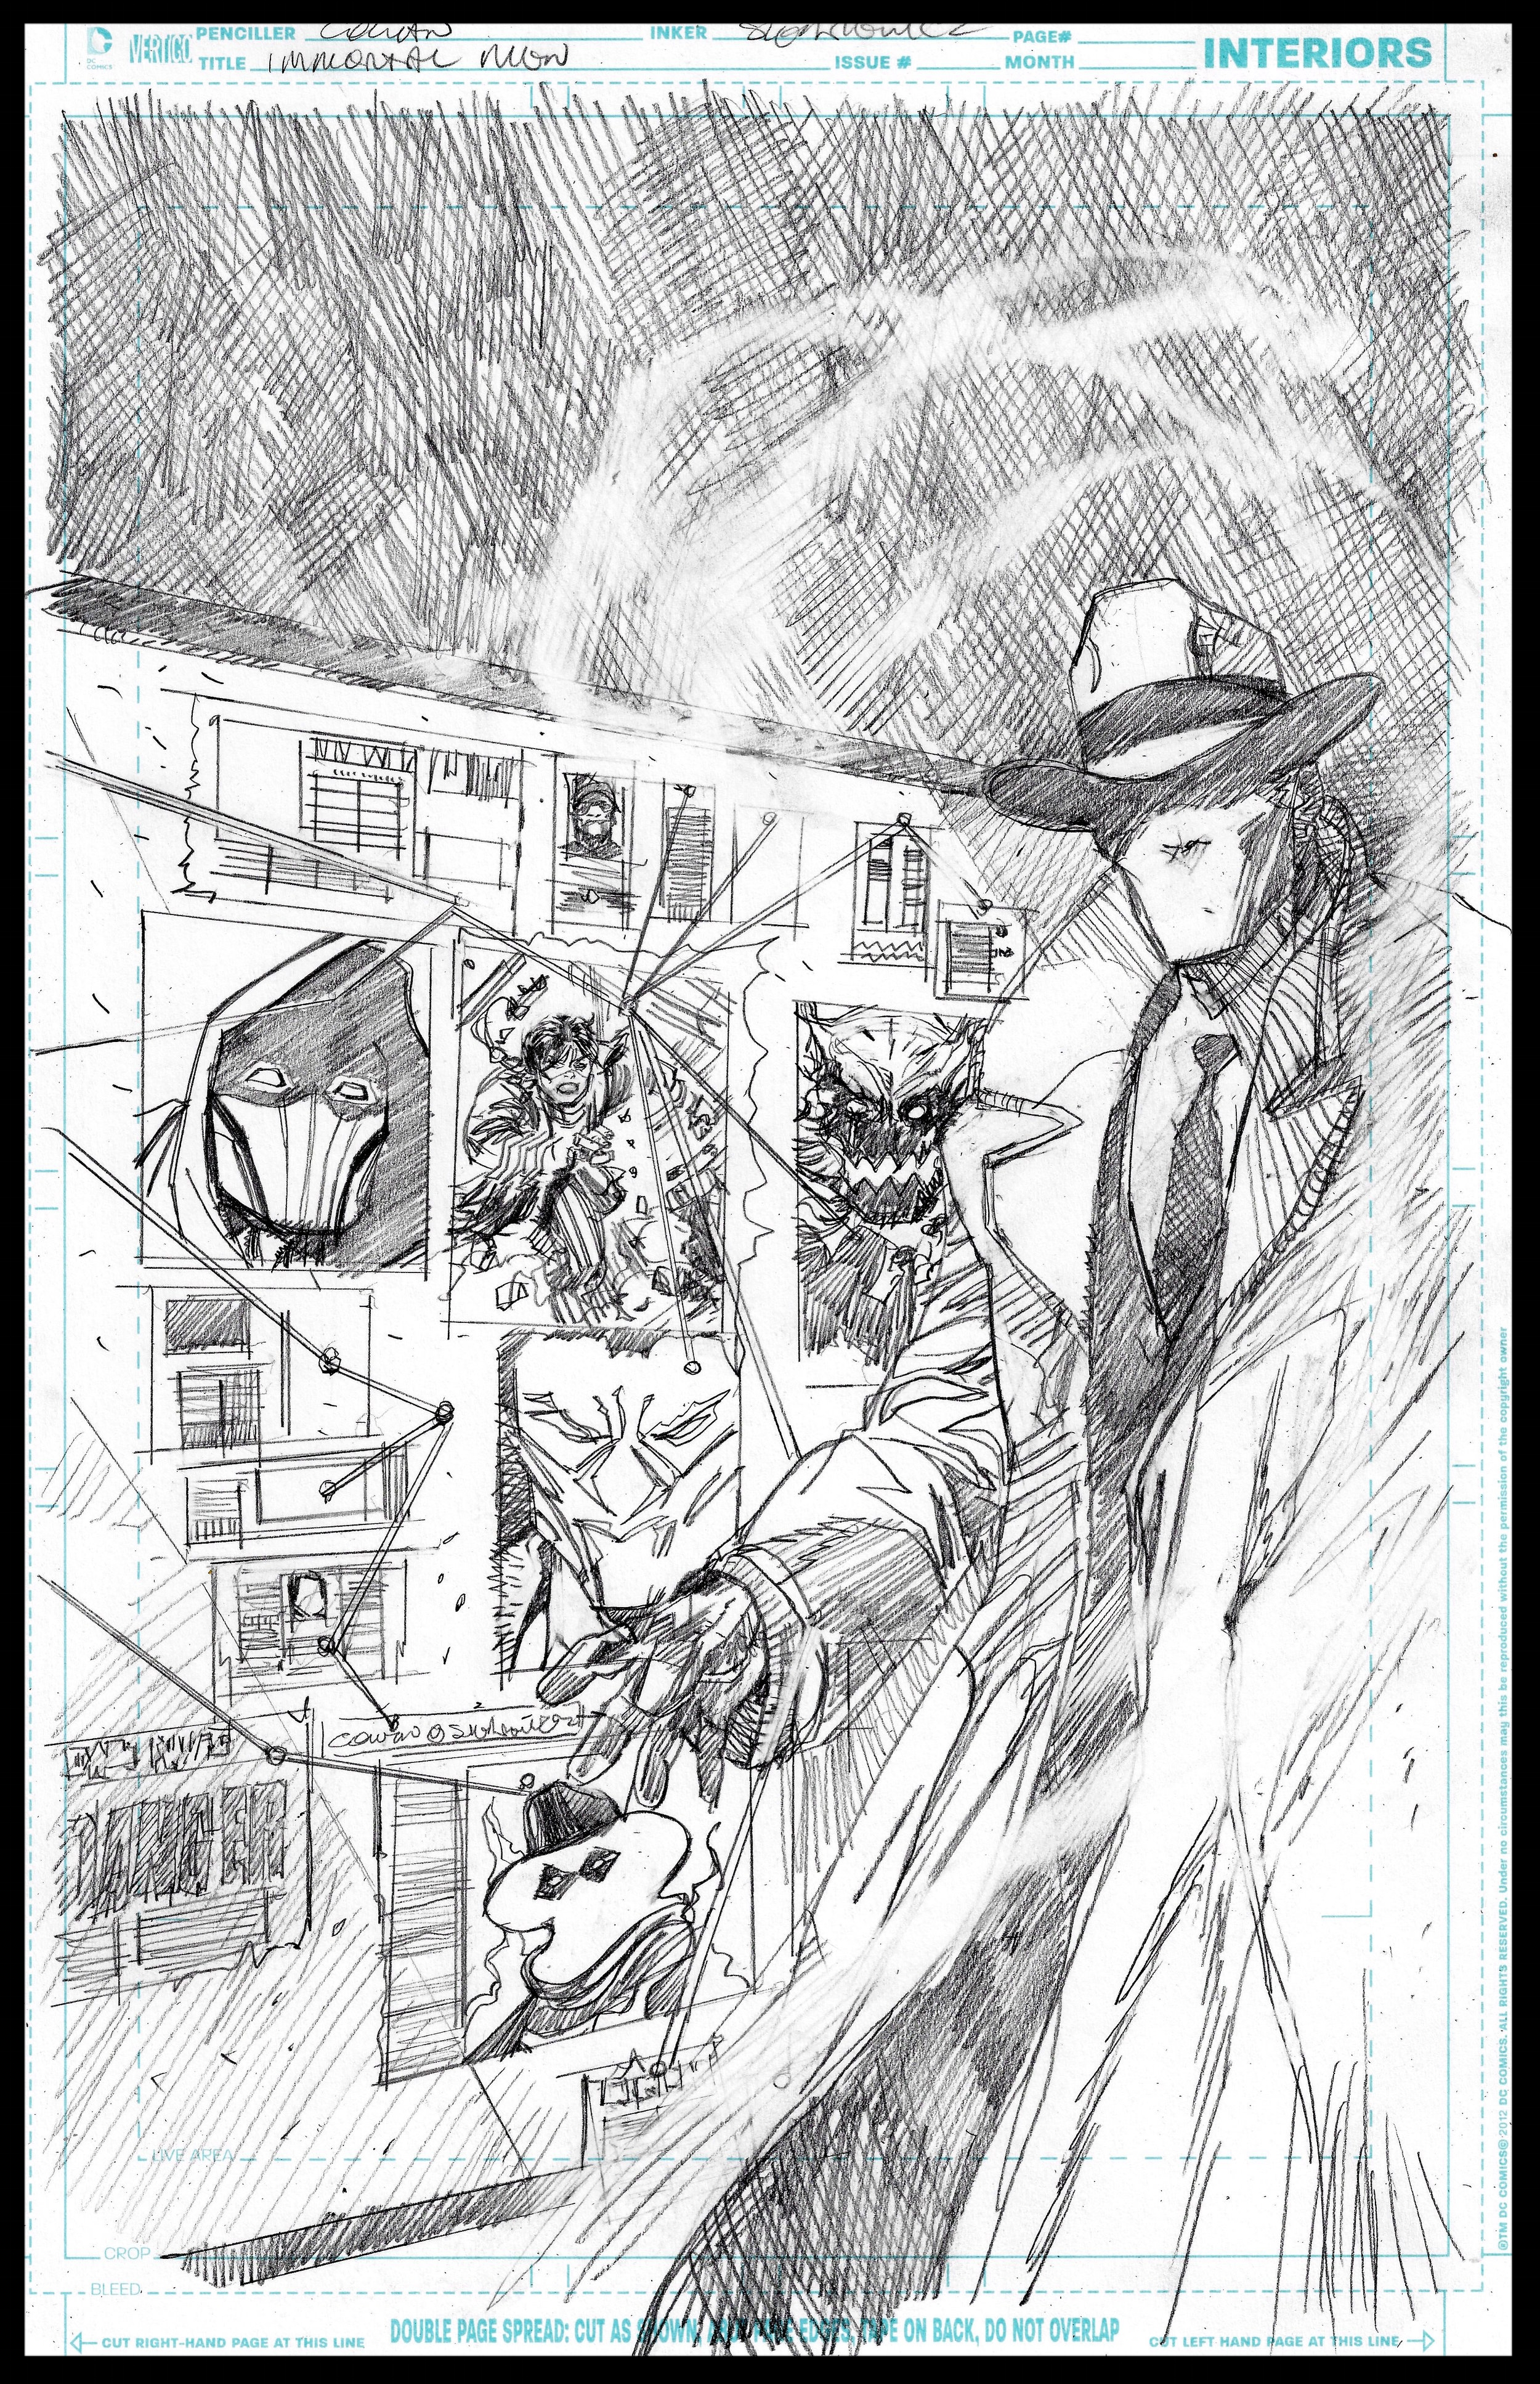 Immortal Men #7 (unpublished) featuring The Question - Cover - Pencils